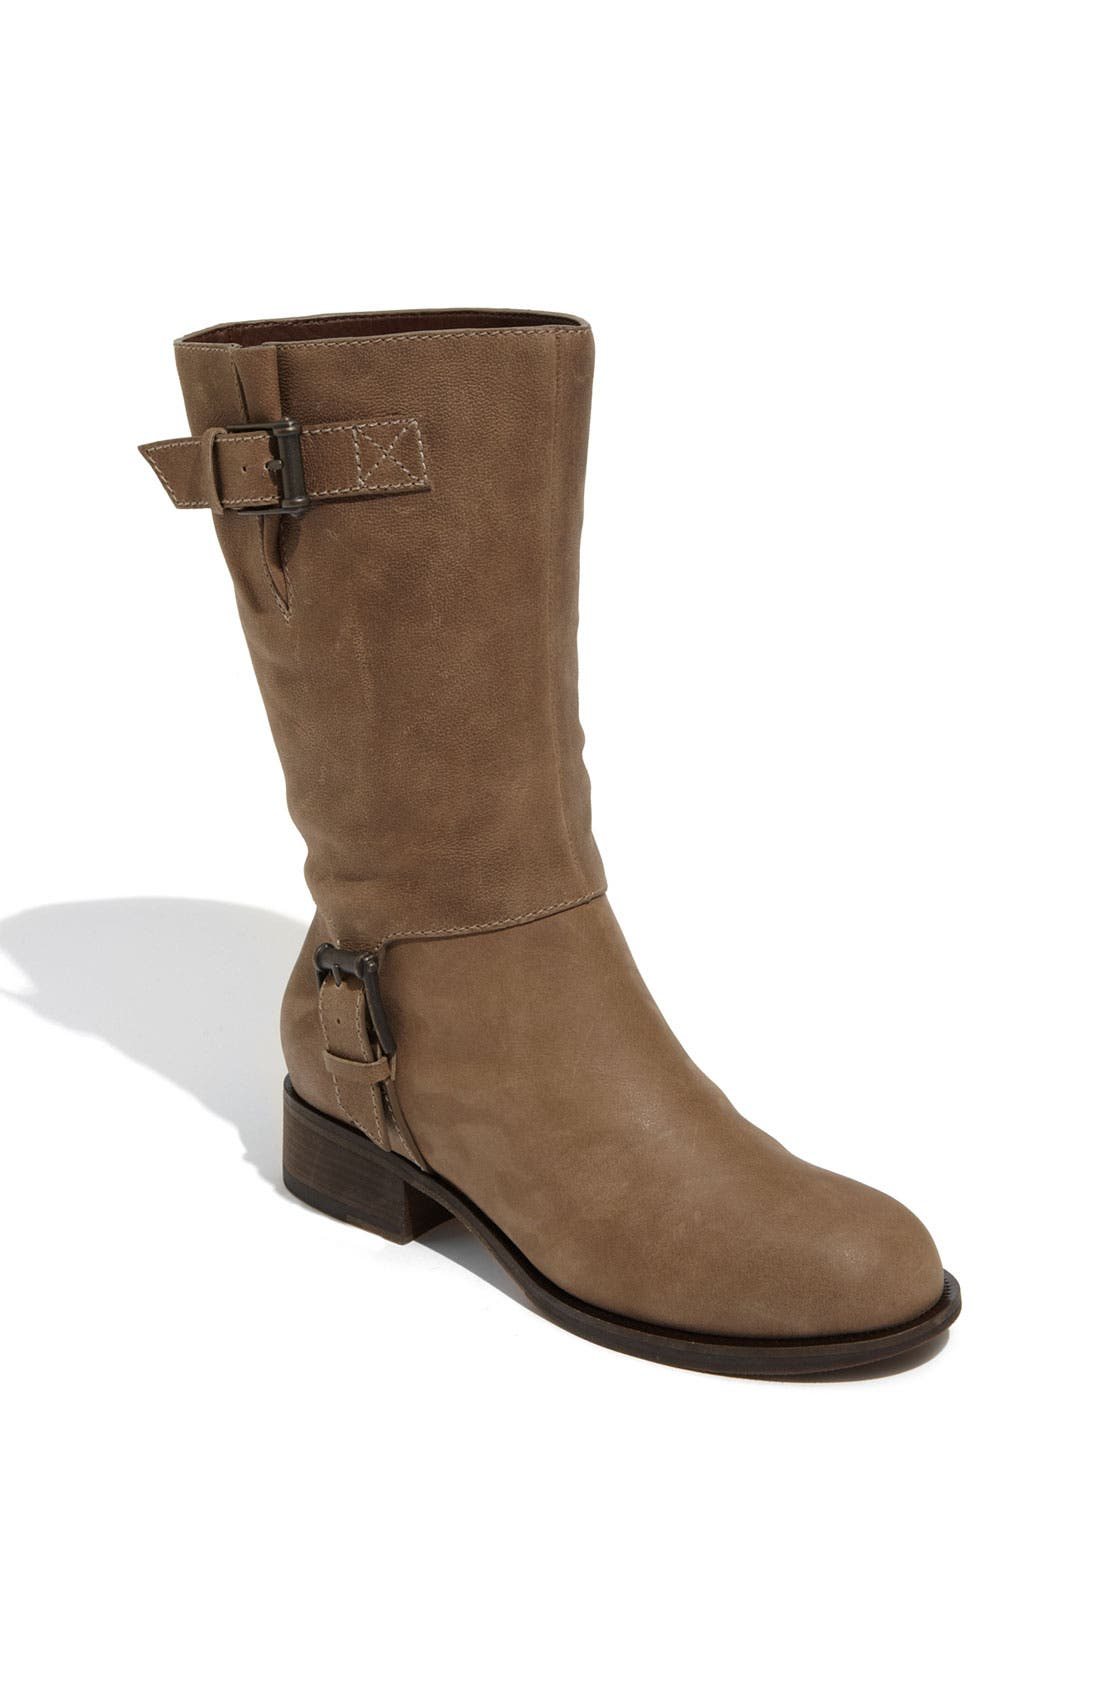 Main Image - Cole Haan 'Air Leora' Mid Calf Leather Boot